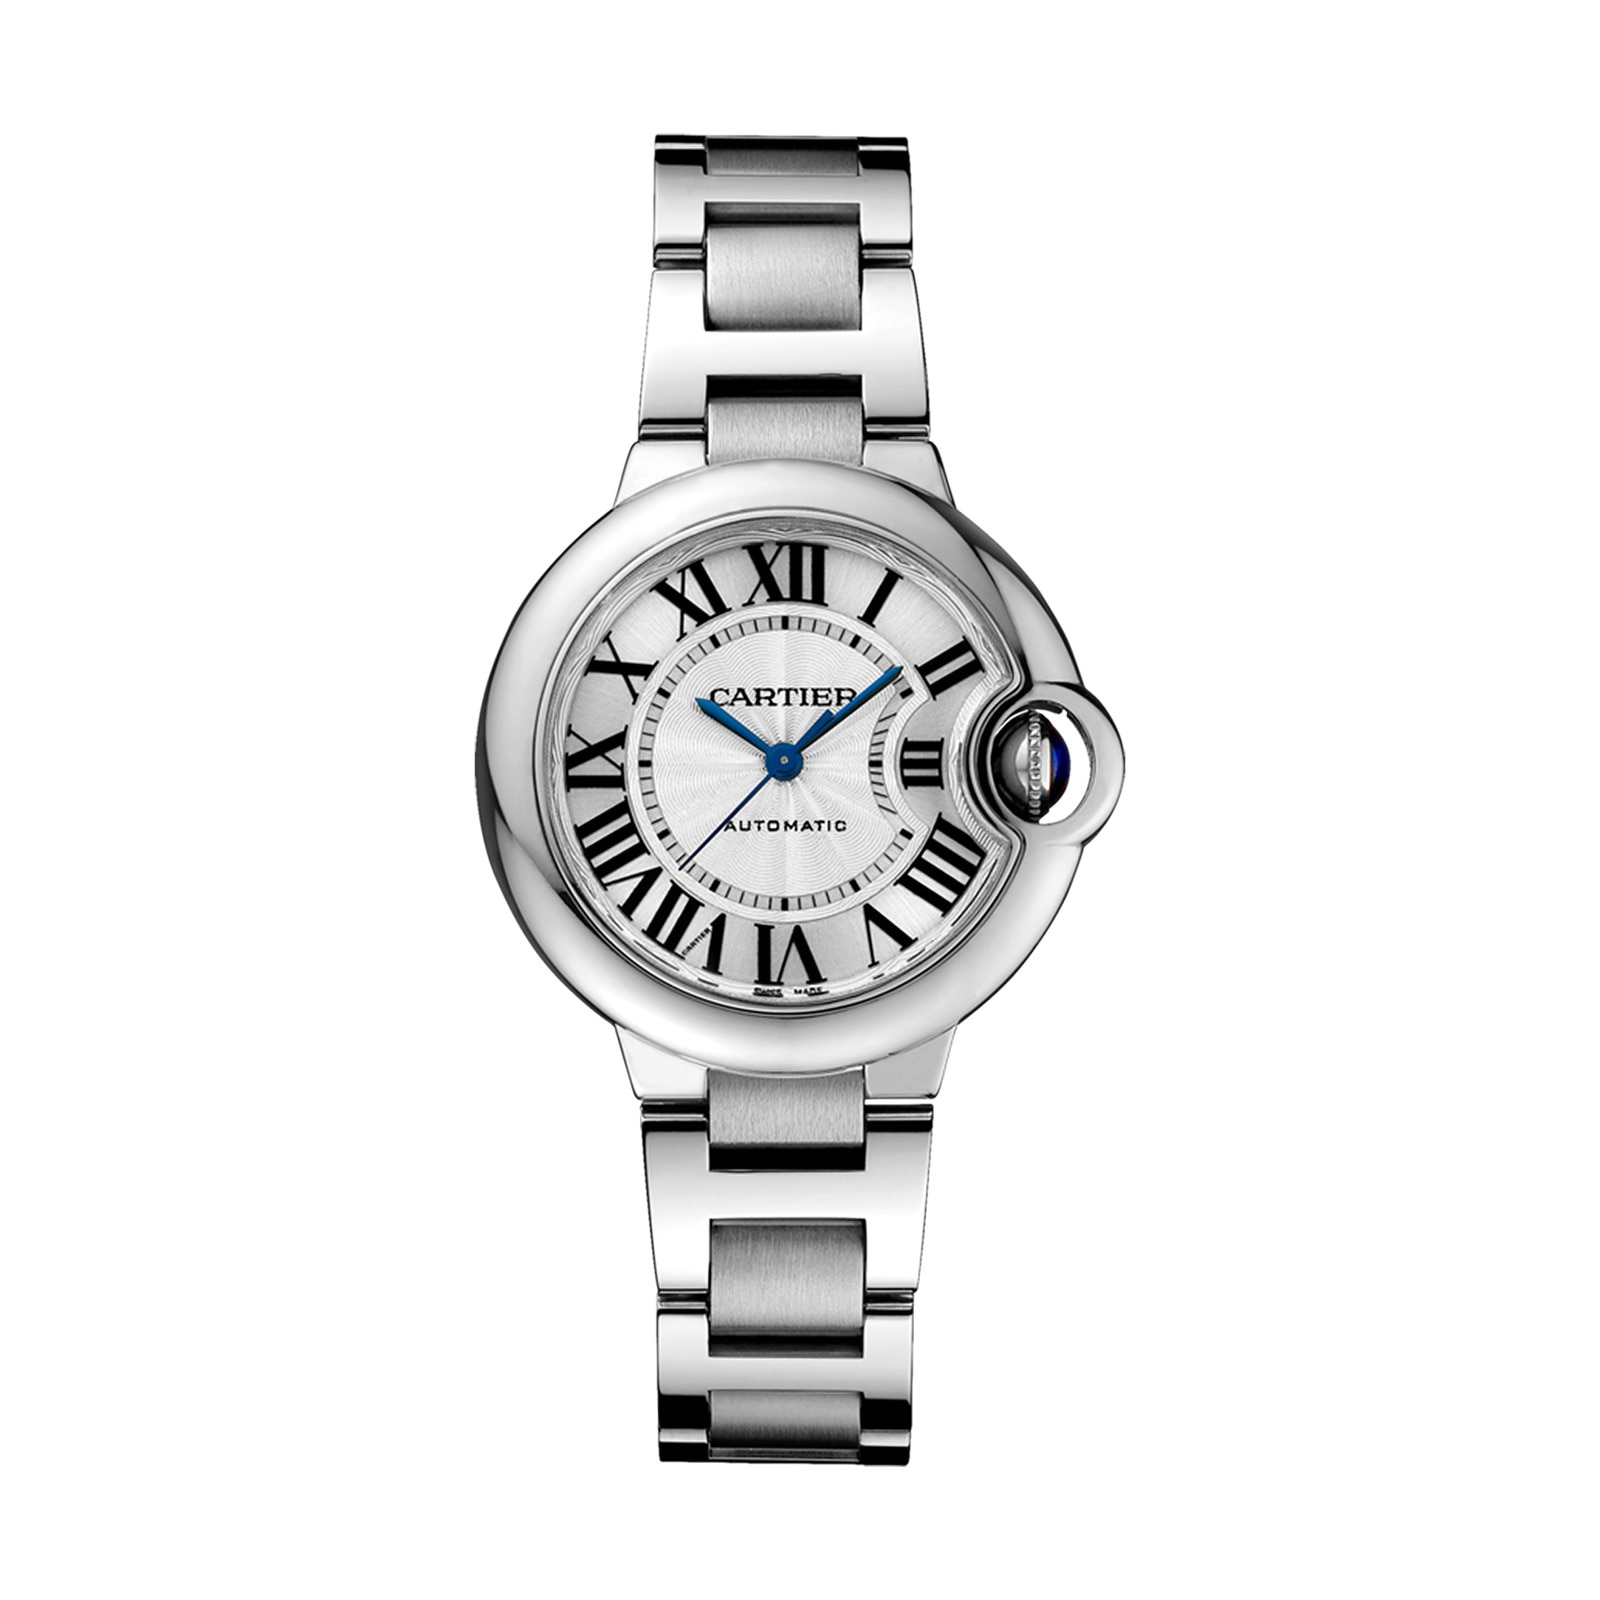 Cartier Ballon Bleu de Cartier watch, 33 mm, steel